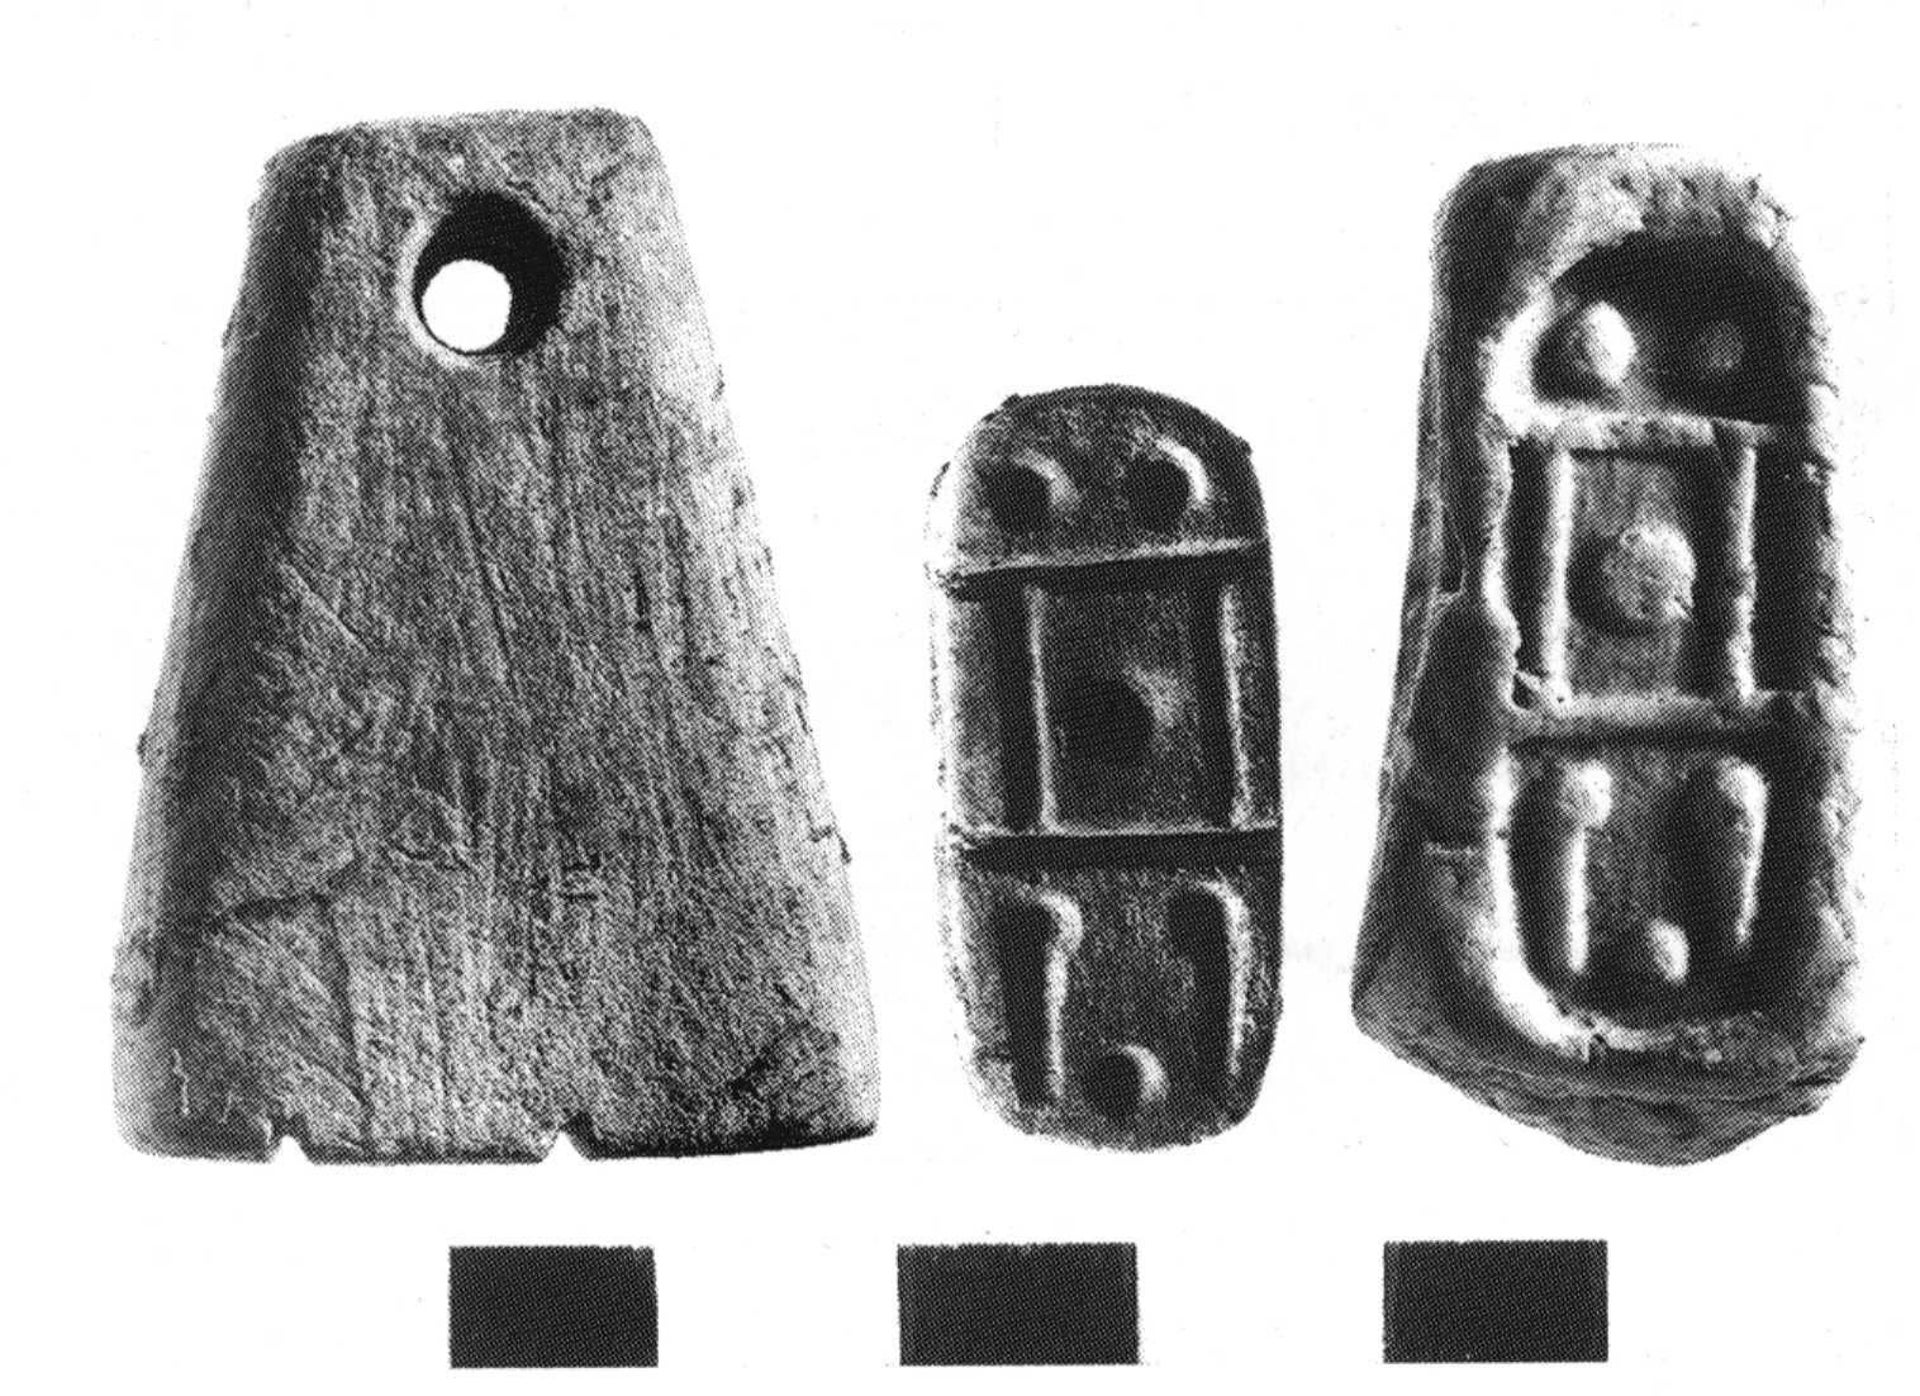 Cyptriot-style stamp-seal in shape of loom weight found at Tel Dan.